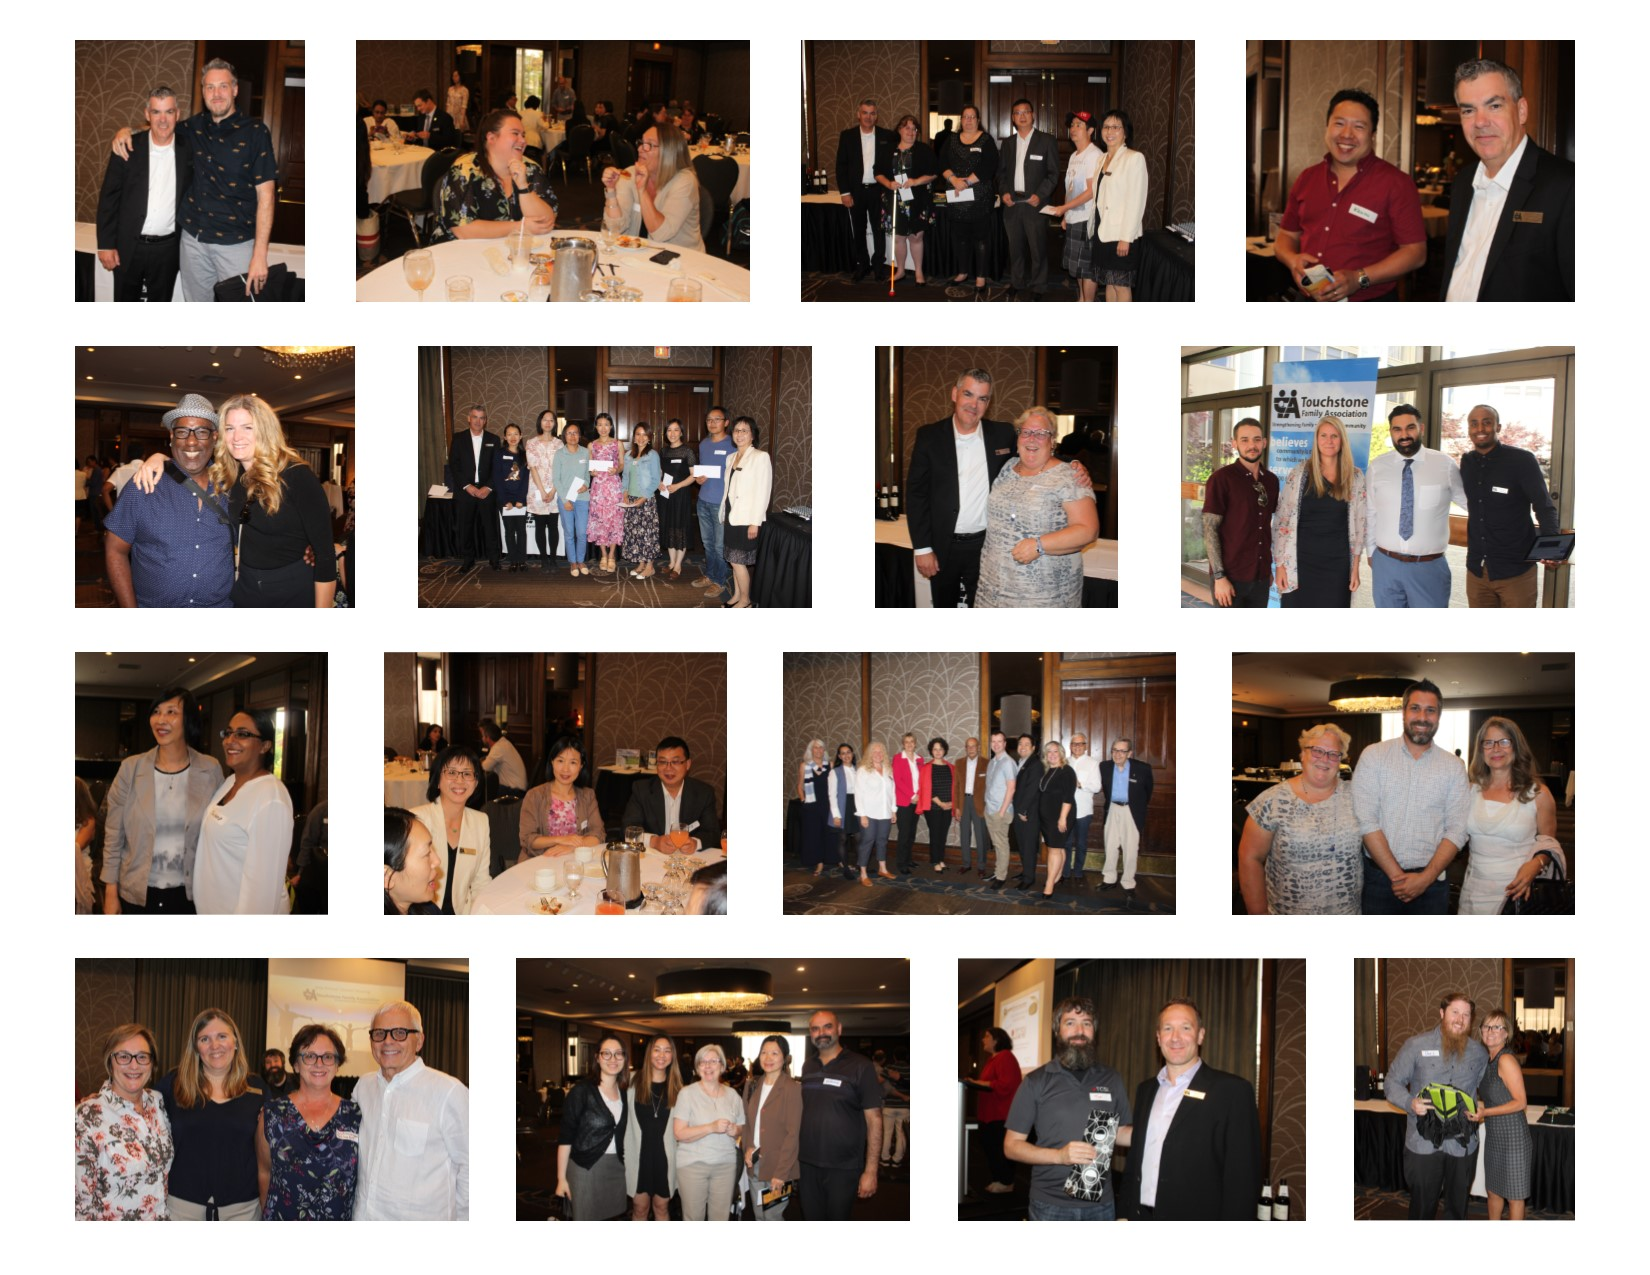 AGM Photo Montage